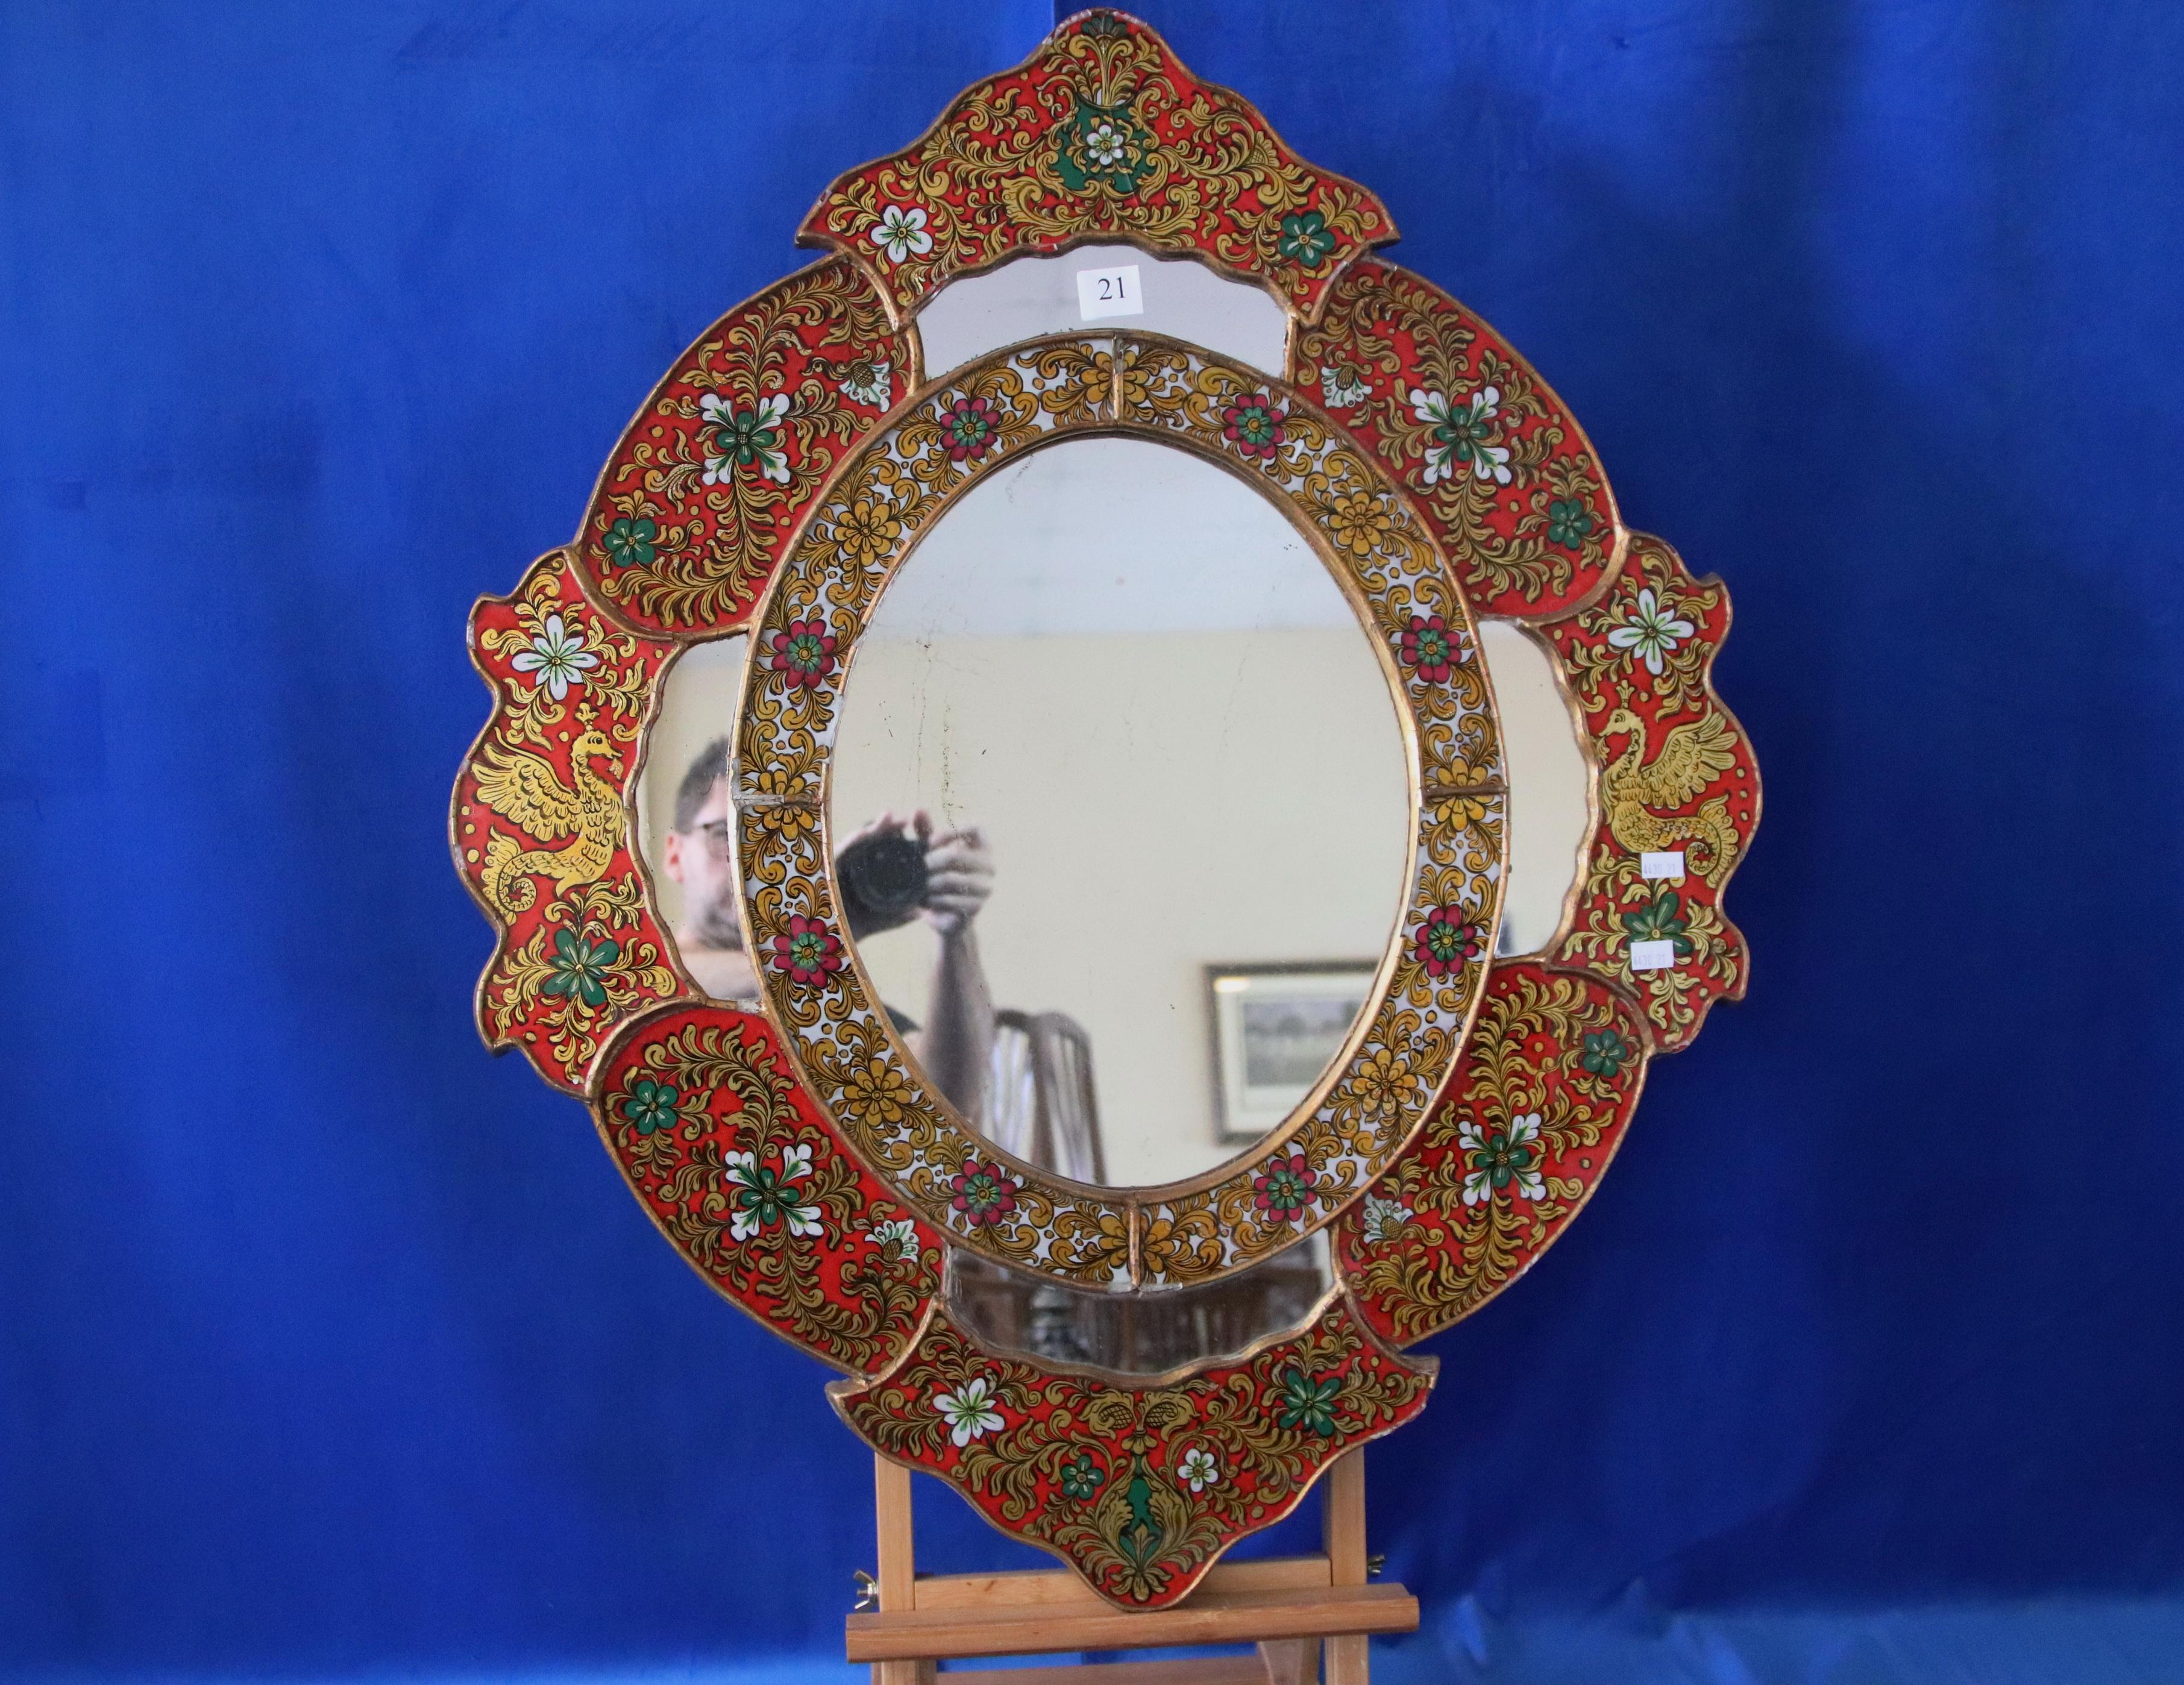 PAINTED AND GILT MIRROR WITH CENTRAL OVAL MIRROR WITH A SHAPED FRAME WITH FURTHER REFLECTING PANES PAINTED WITH BIRDS & FLOWERS AS FOUND, 82CM H X 63CM W